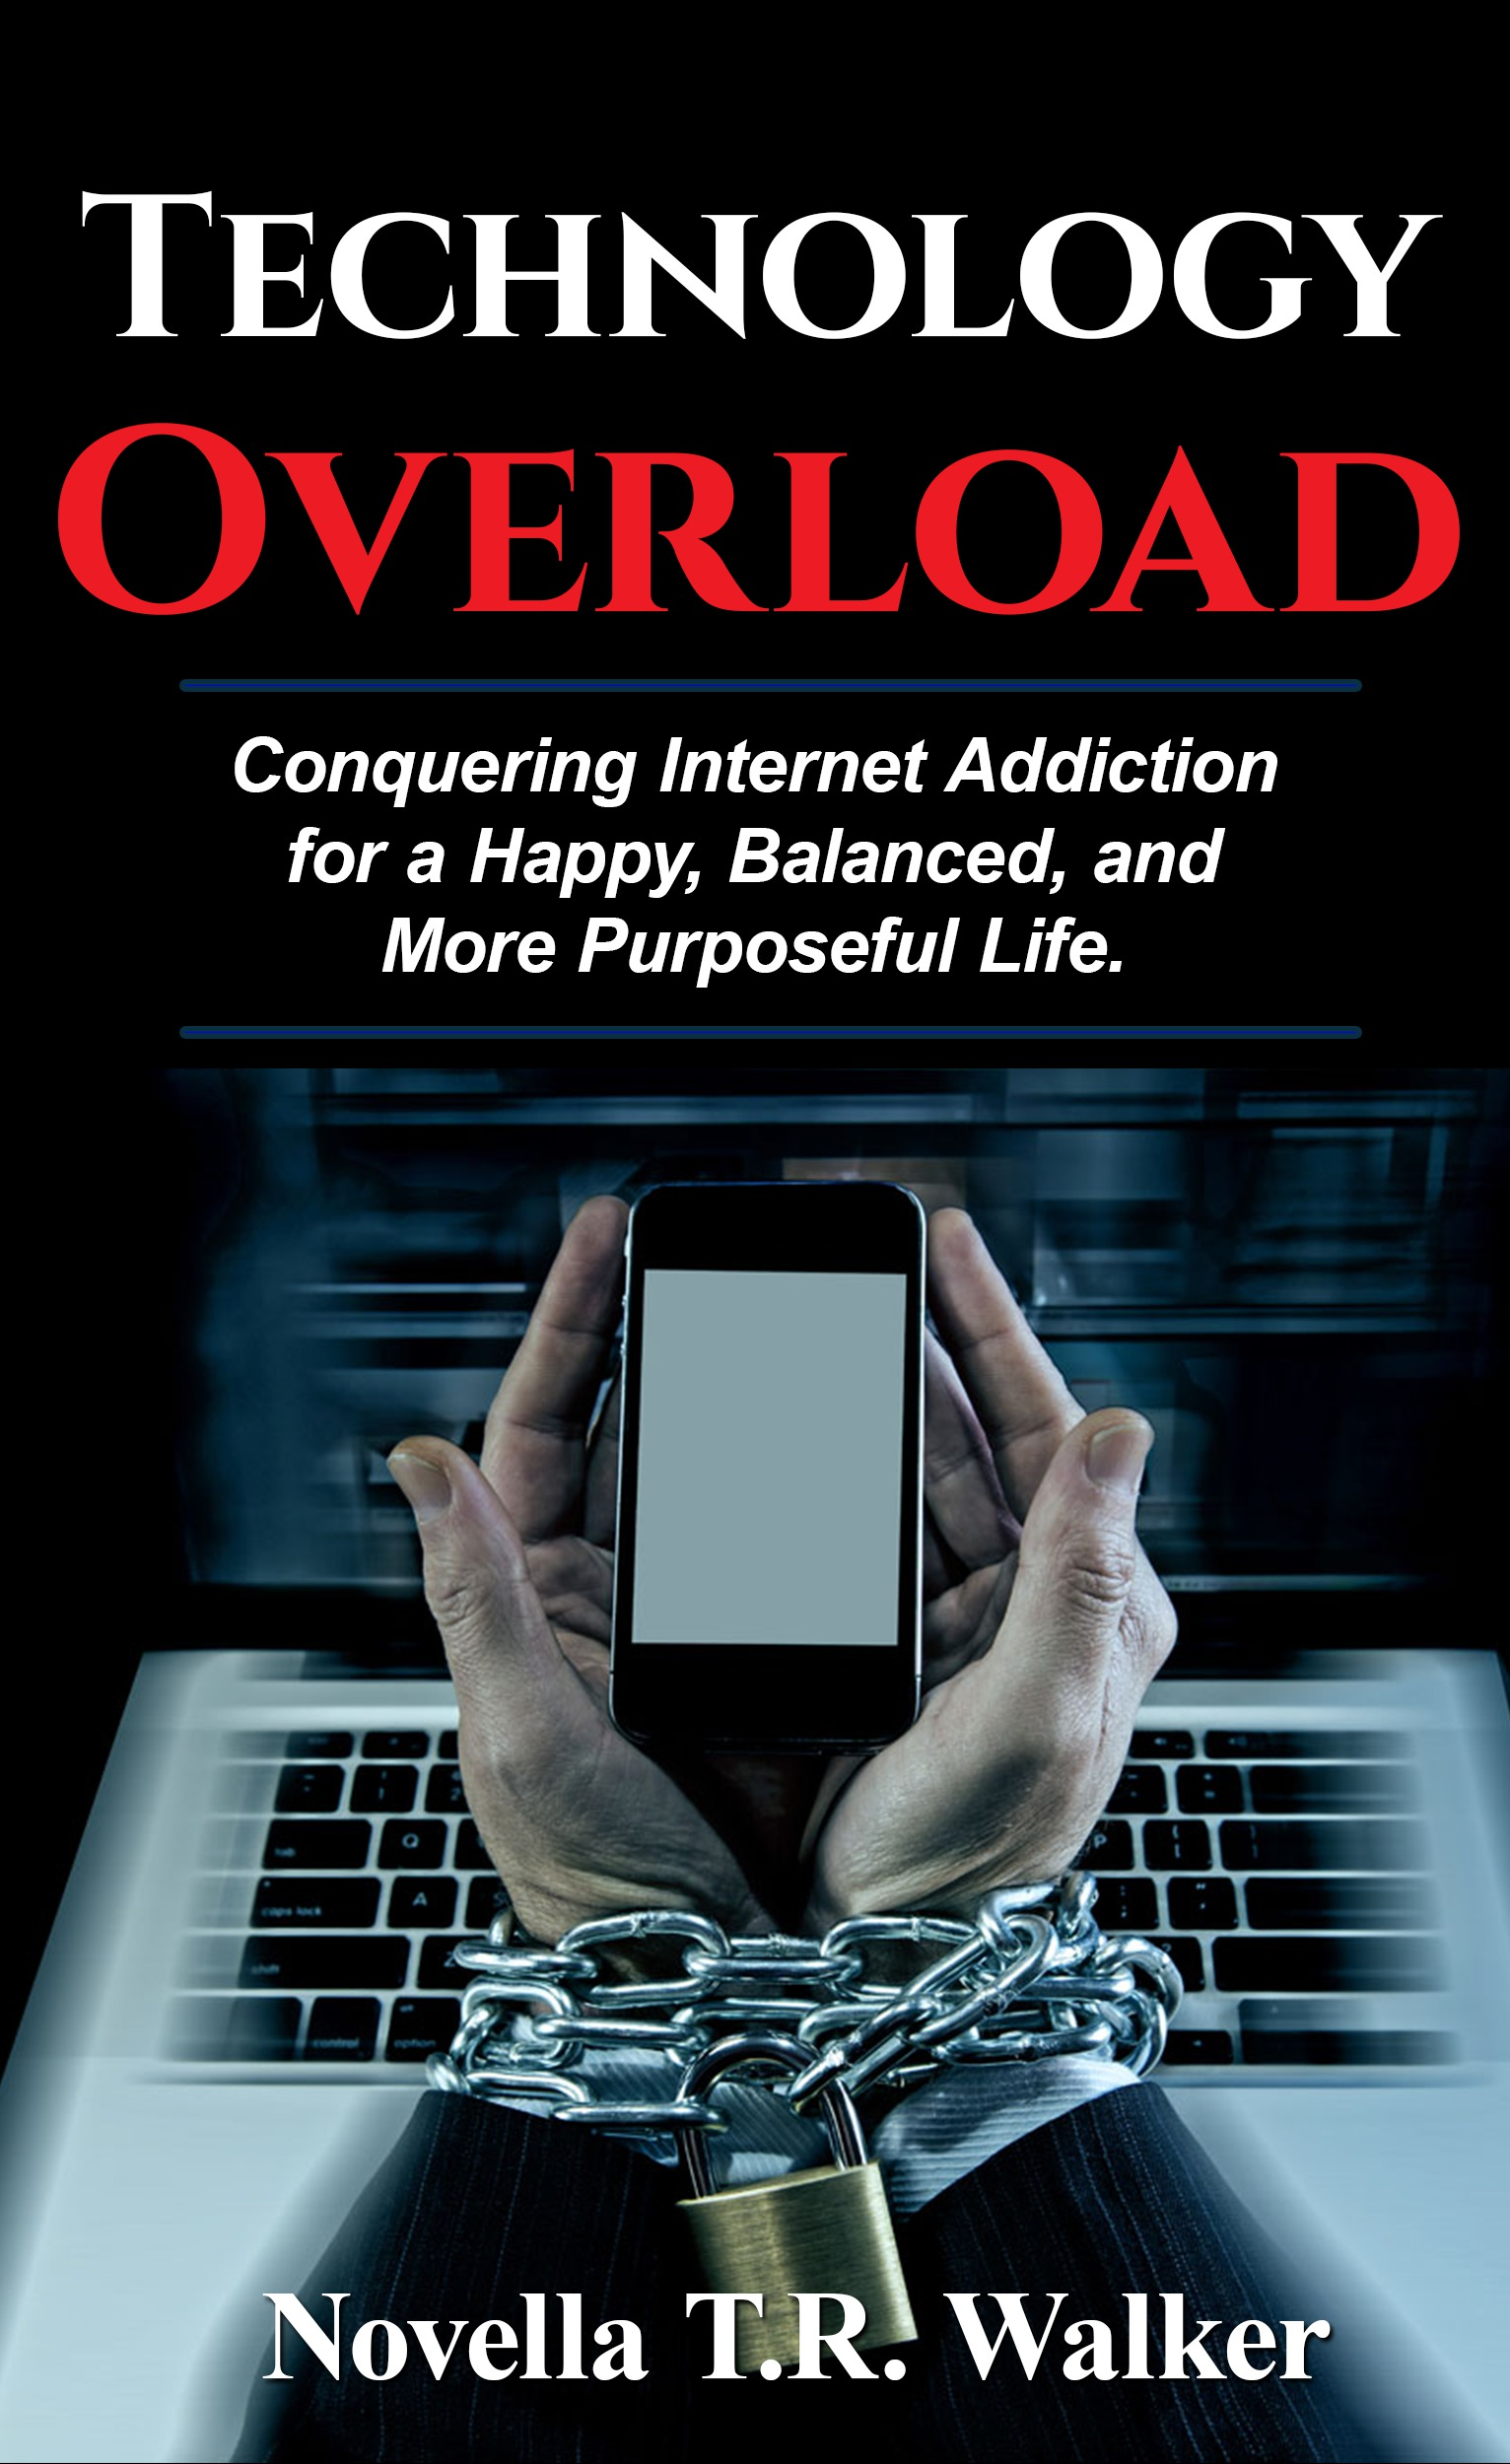 Technology Overload: Conquering Internet Addiction for a Happy, Balanced, and More Purposeful Life